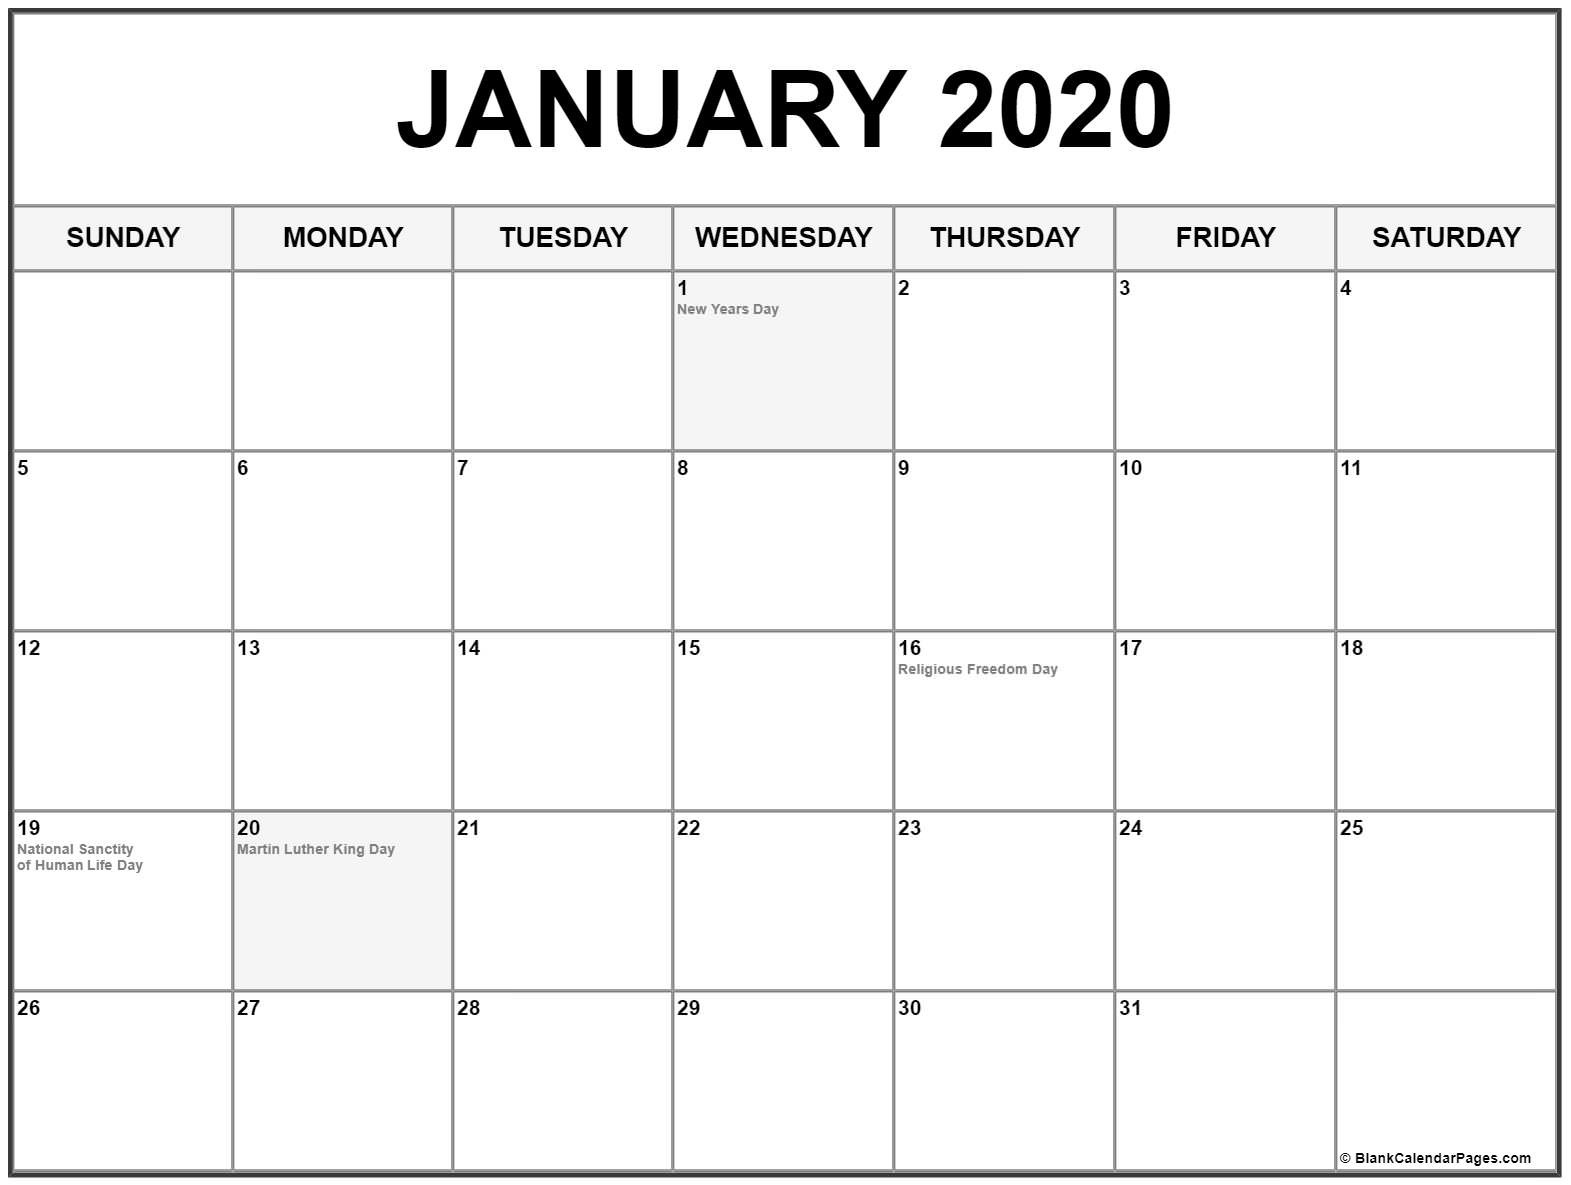 Collection Of January 2020 Calendars With Holidays-Calendar 2020 Holidays Us